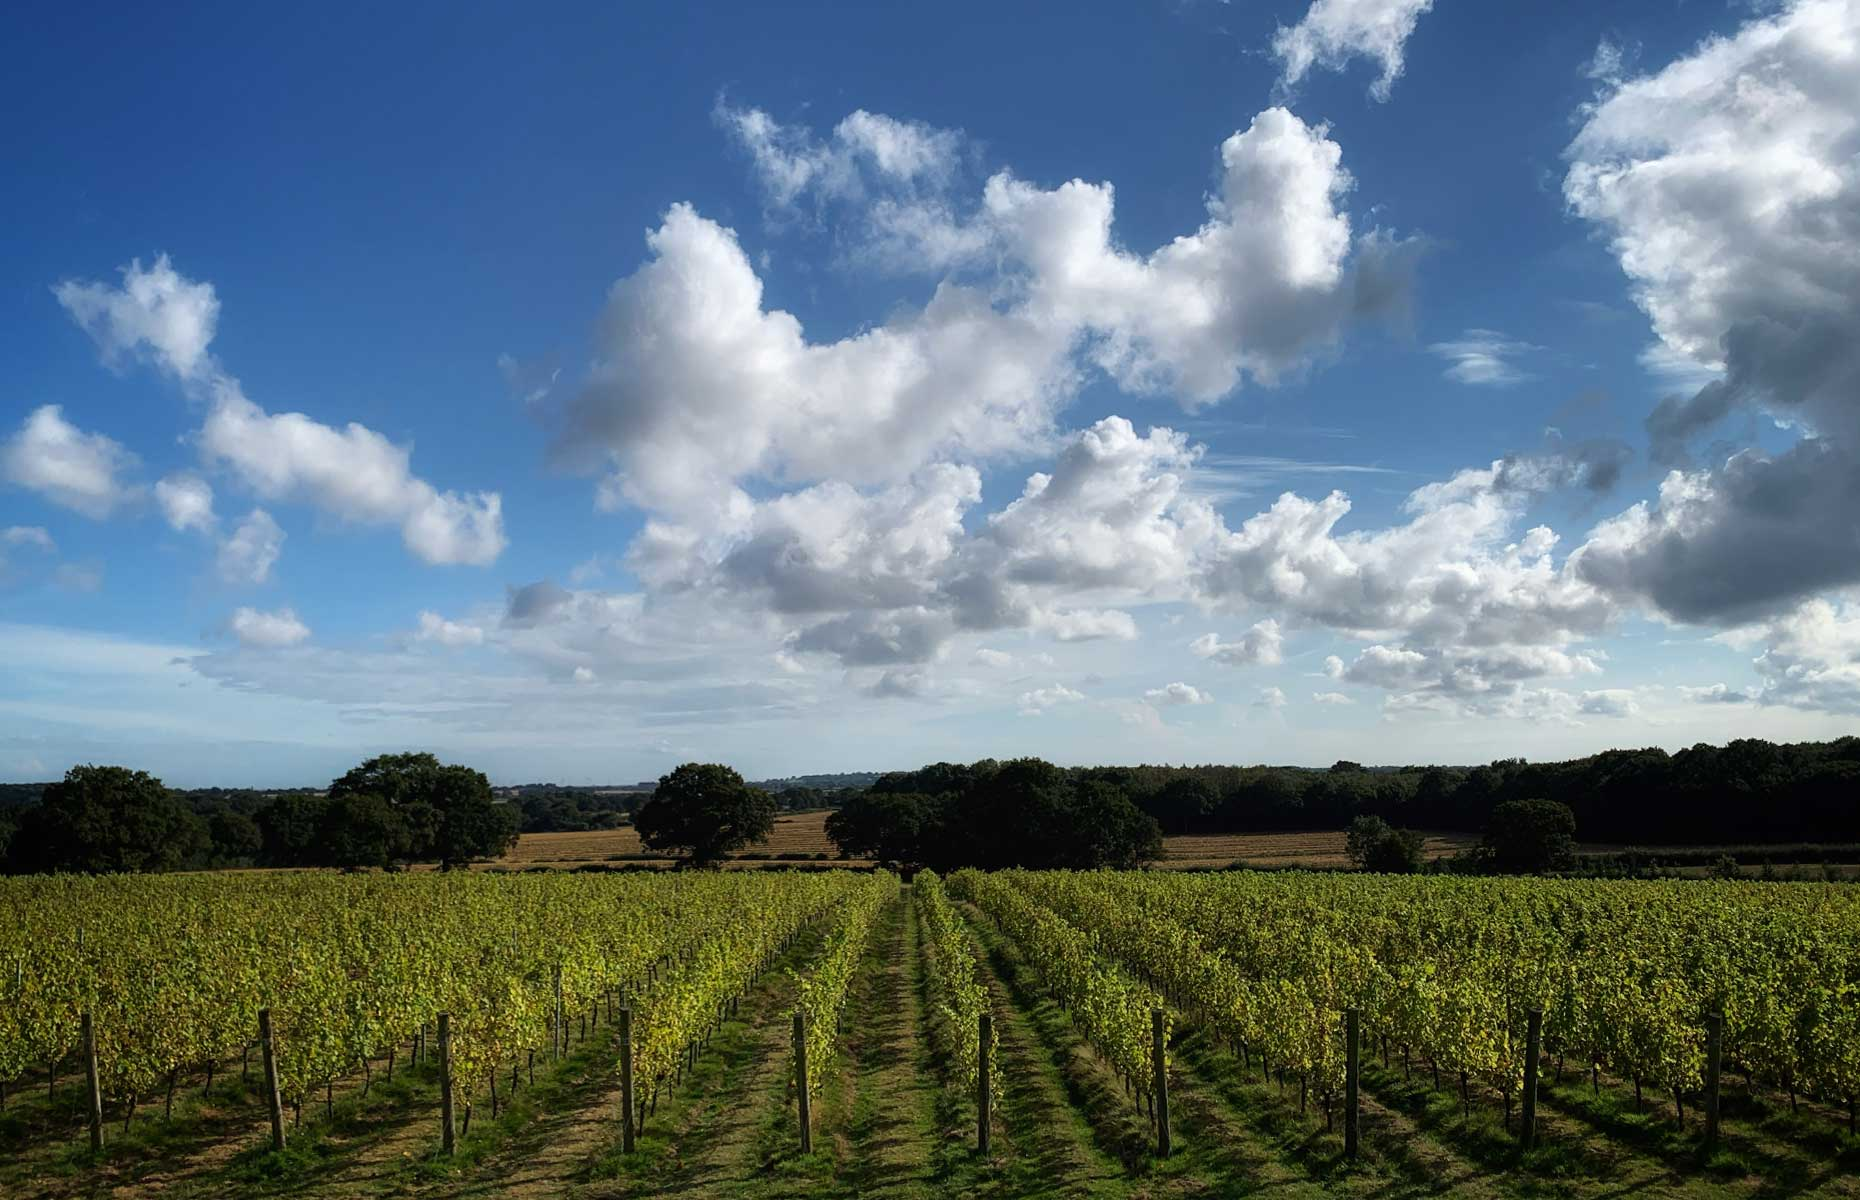 Woodchurch Wines vineyard photographed in September 2021 (Image: Laura Jackson/loveFOOD)